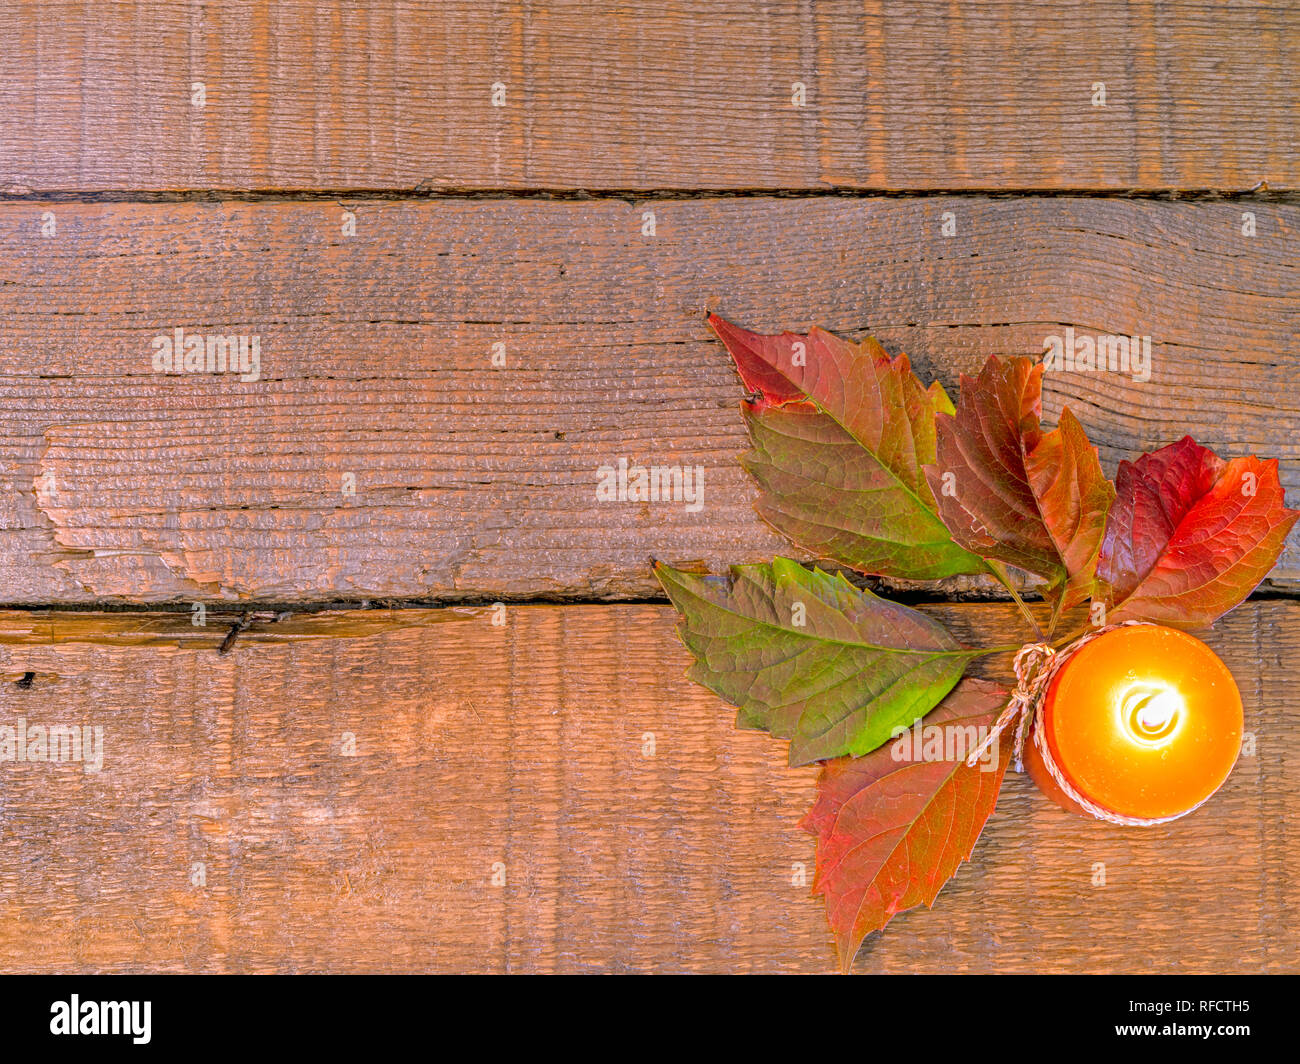 Rustic old barn wood background background with autumn leaves and copy space with a lighted orange candle. - Stock Image